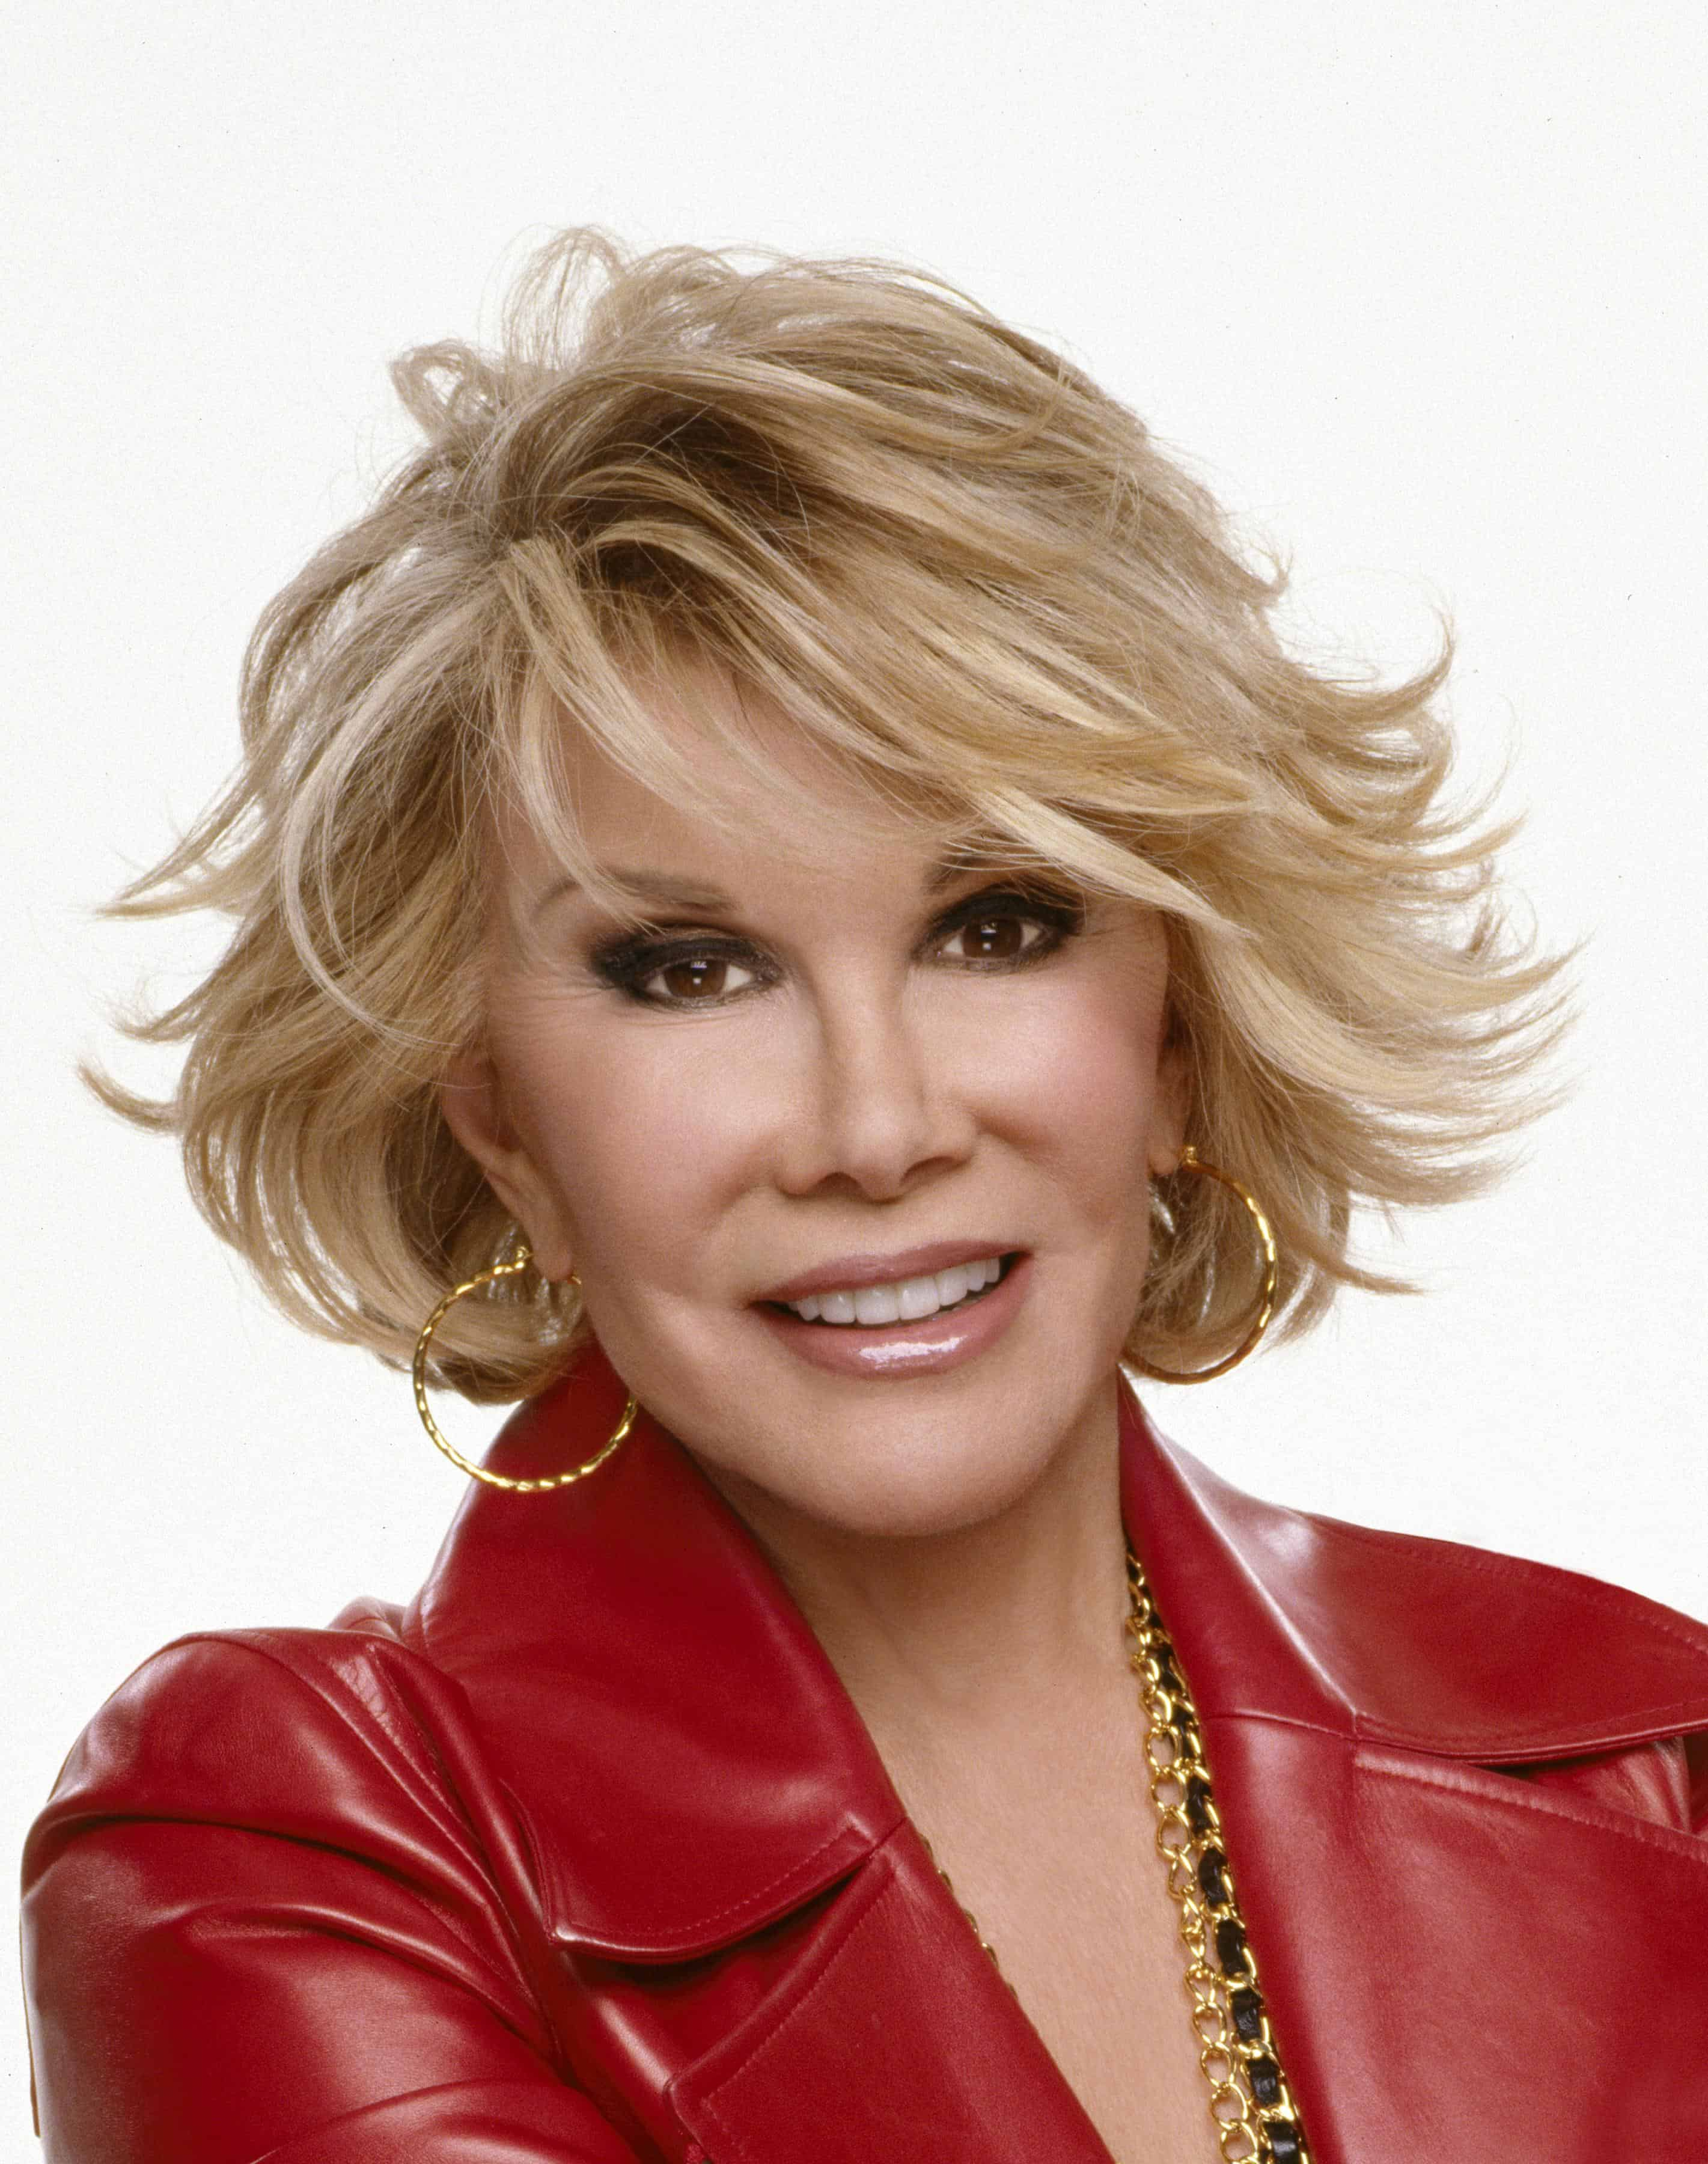 Joan Rivers | An Obama Hit Or Hollywood Illuminati Sacrifice?